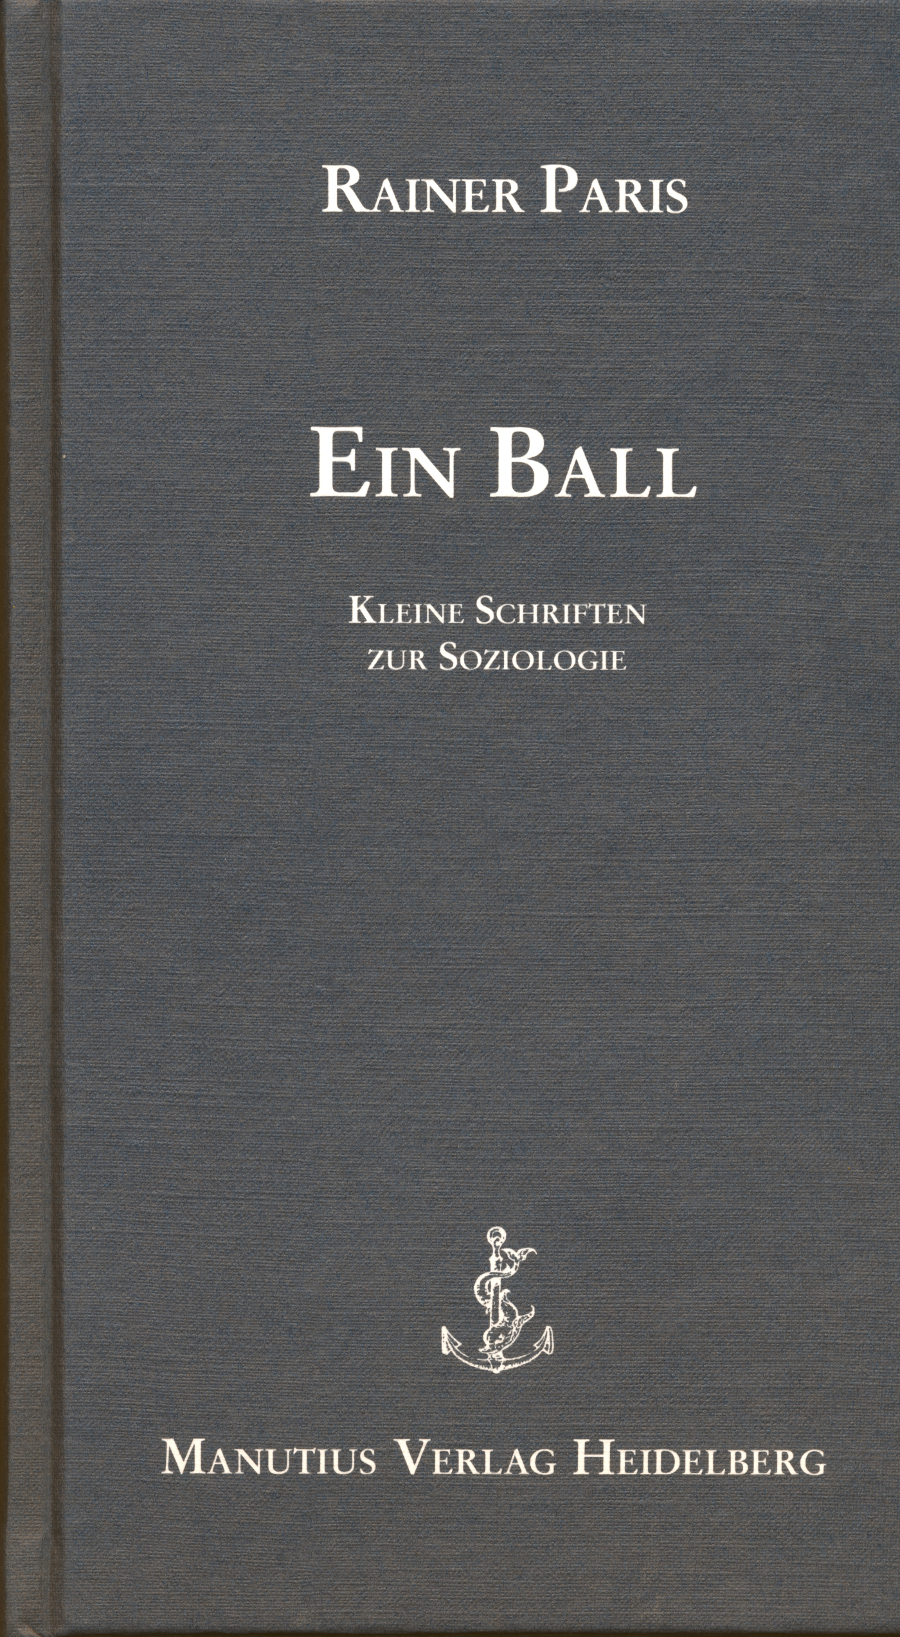 Rainer Paris: Ein Ball